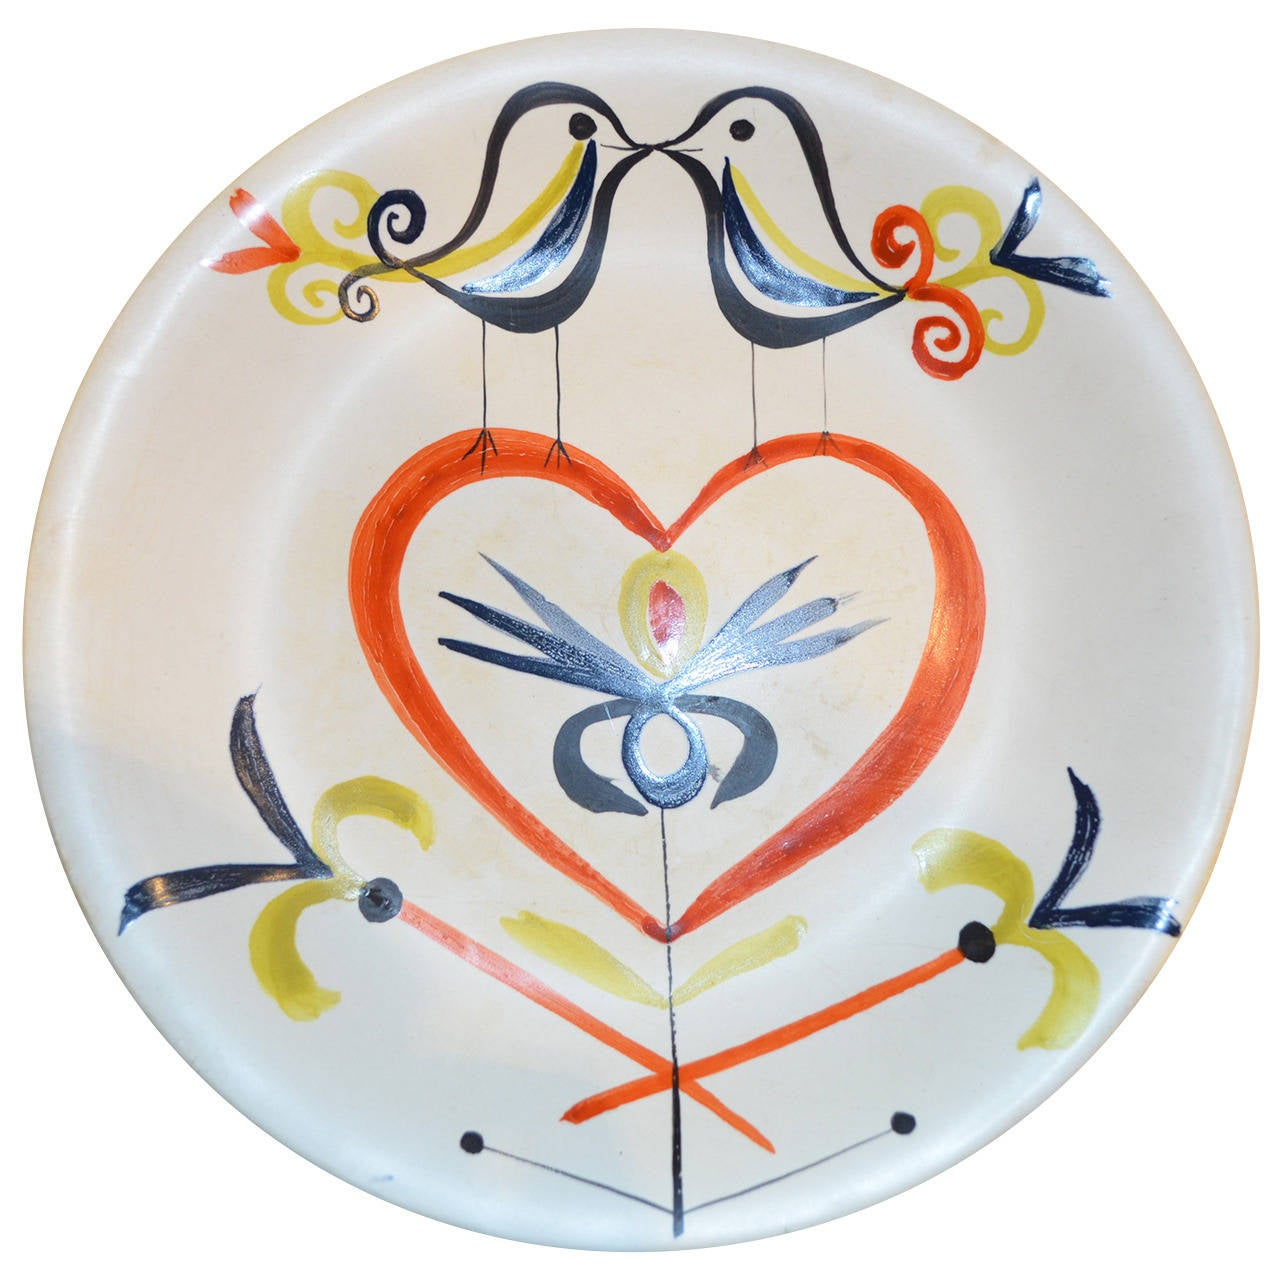 Decorative Ceramic Plate by Roger Capron For Sale